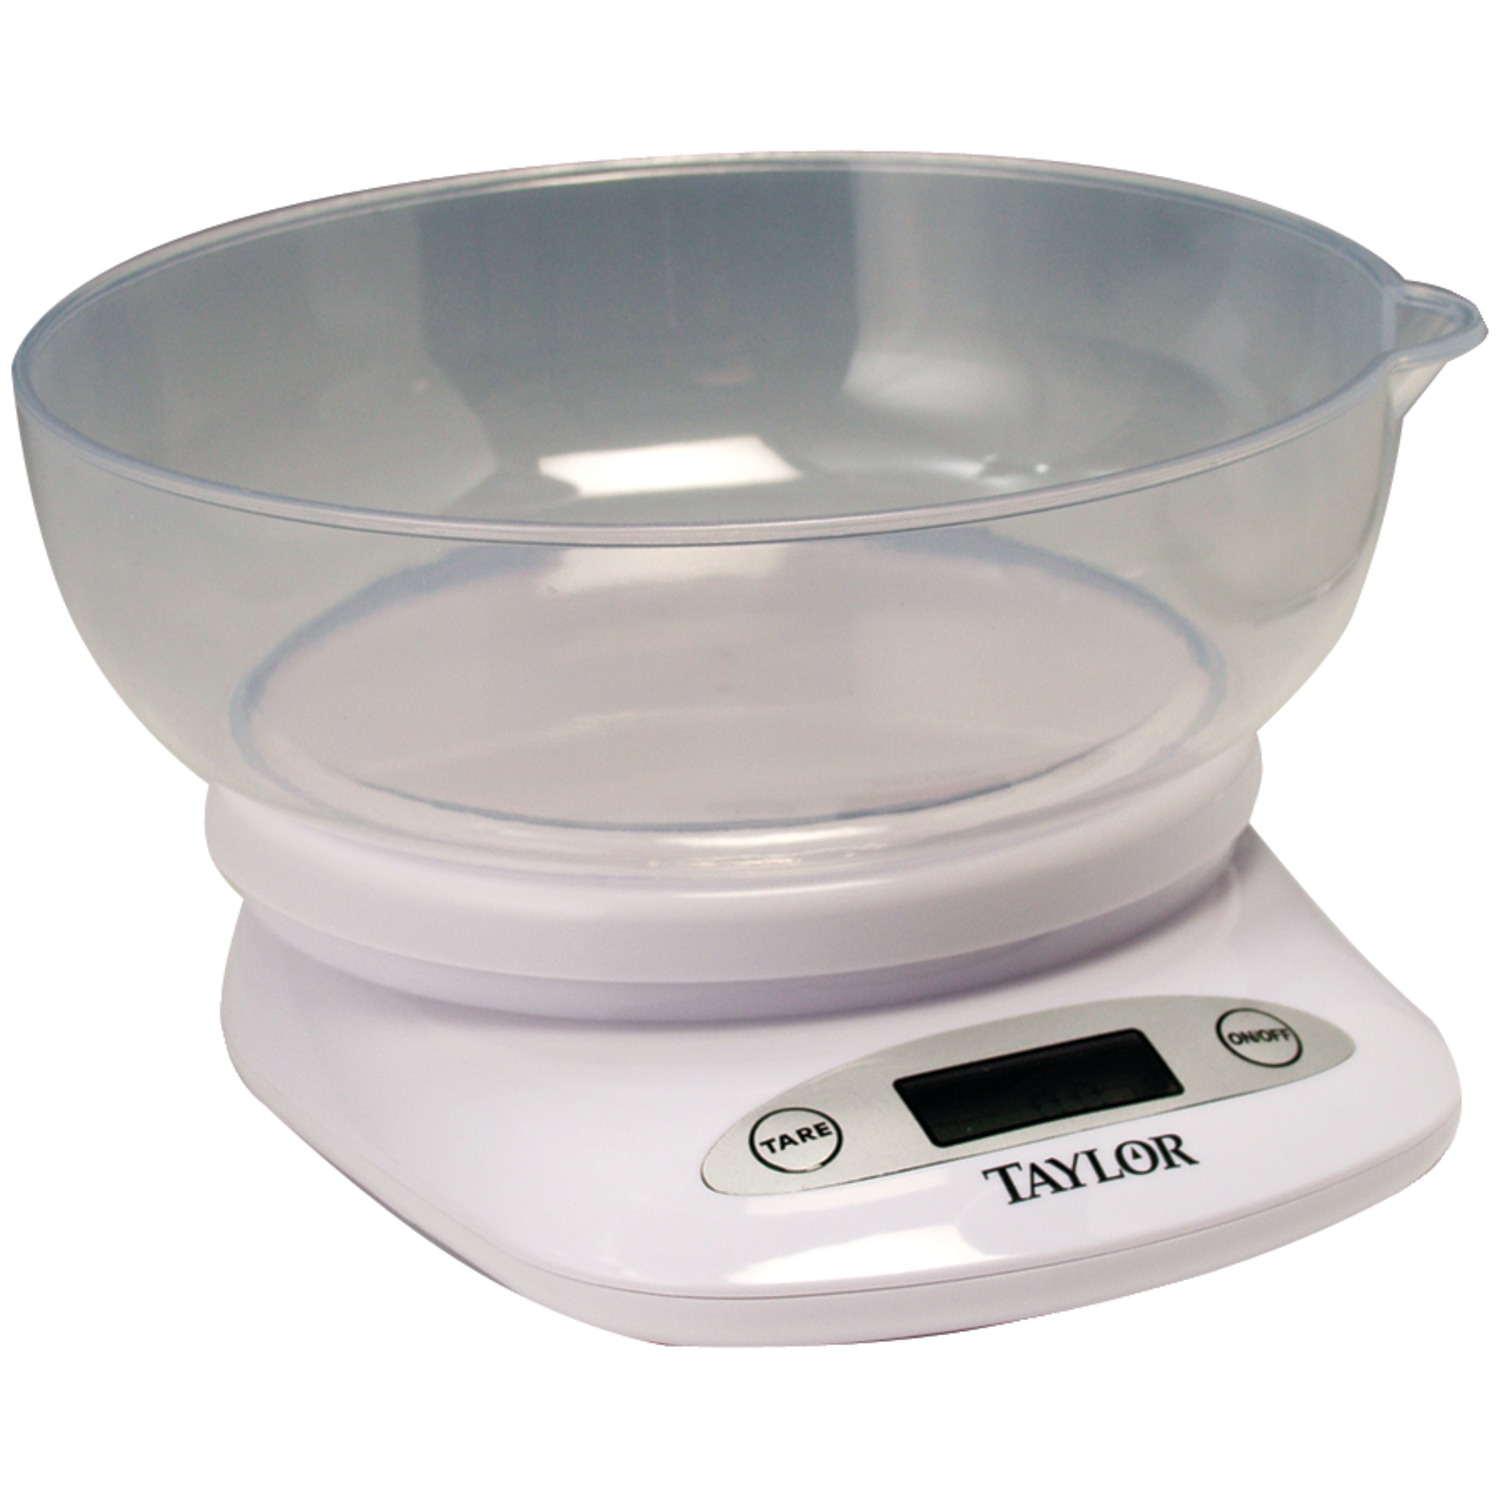 Taylor 3804 Digital Kitchen Scale with Bowl